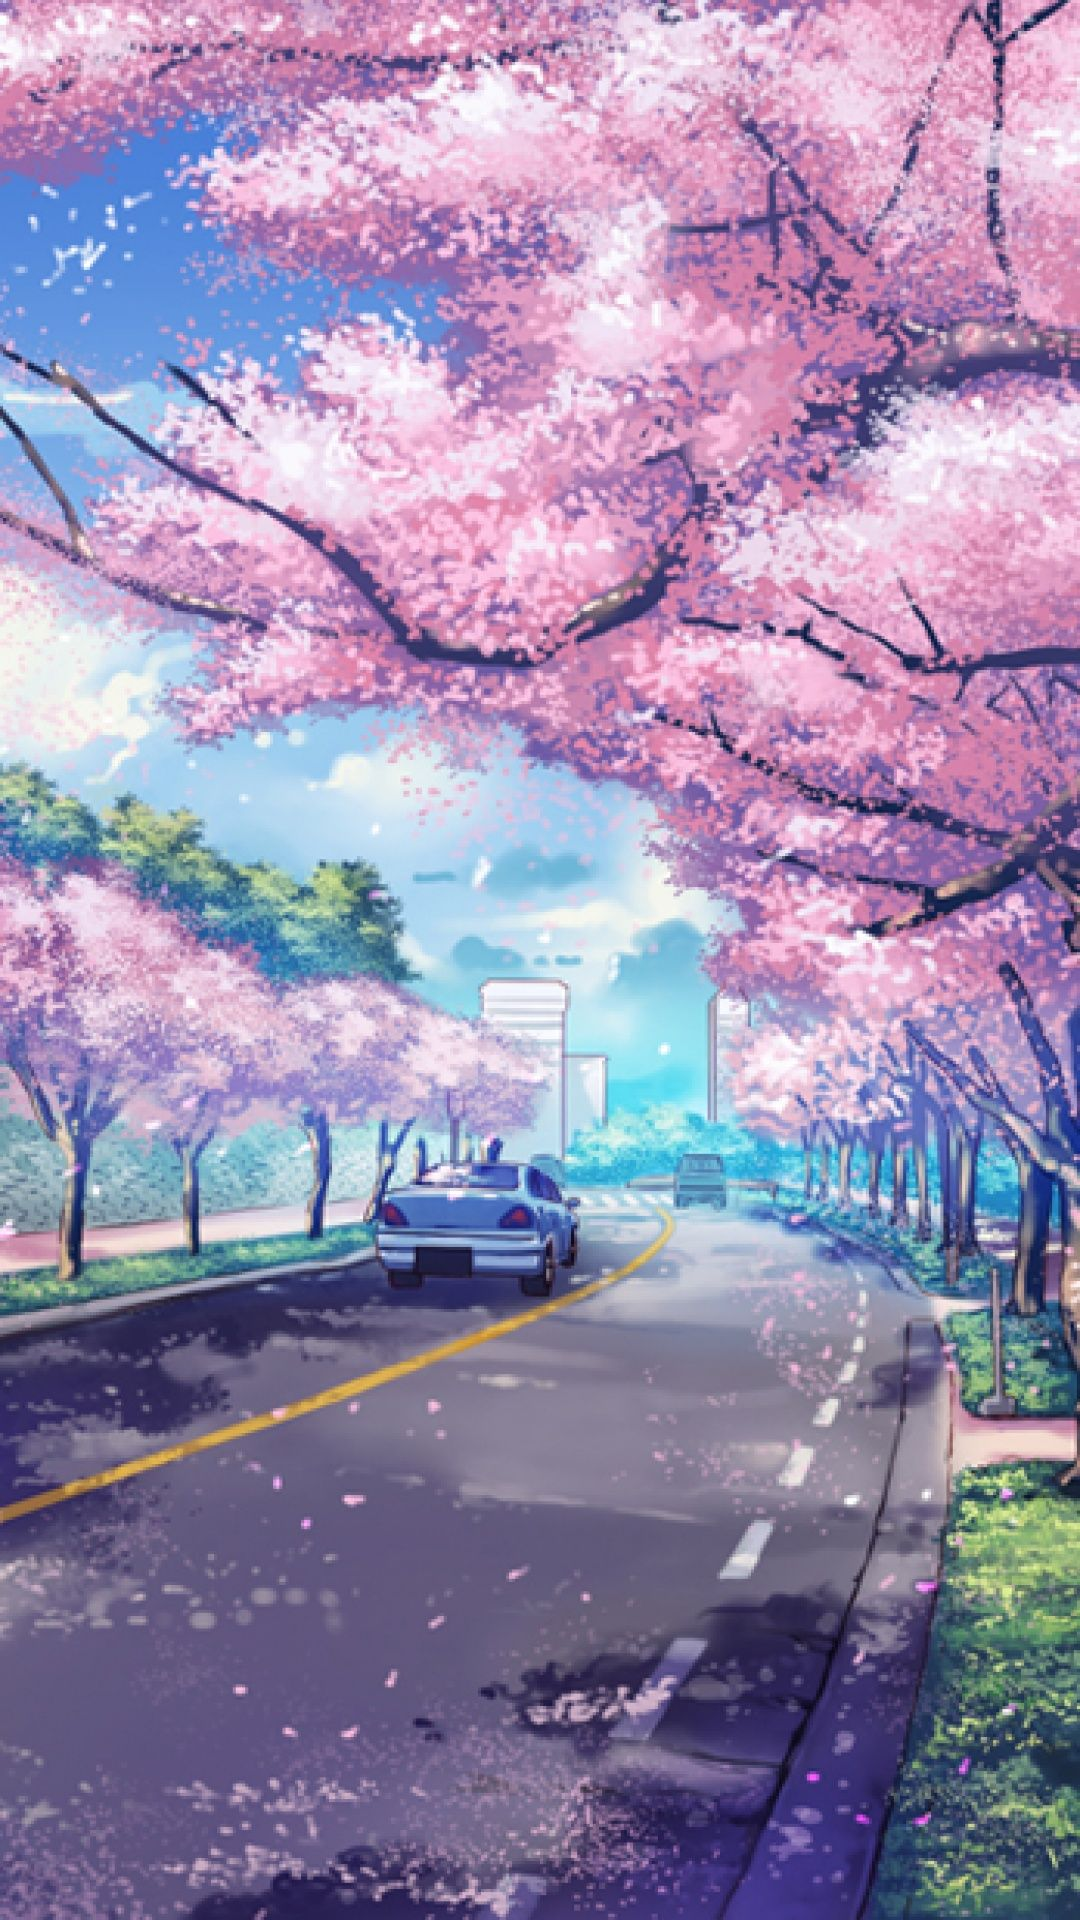 Japan Cityscape Iphone Wallpaper Id 43521 Anime Backgrounds Wallpapers Anime Scenery Wallpaper Iphone Wallpaper Japan